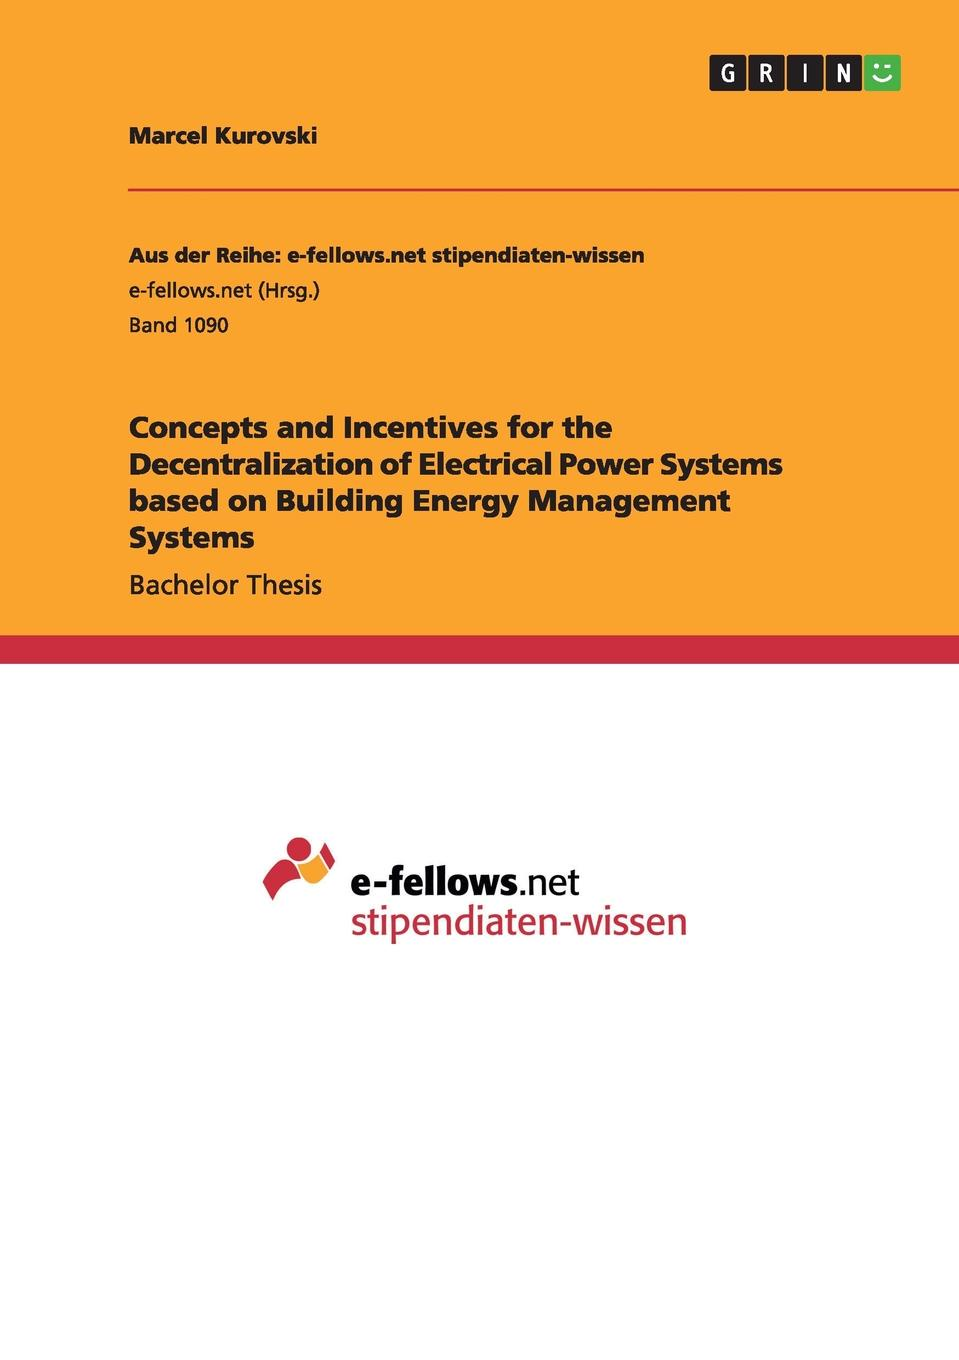 цена на Marcel Kurovski Concepts and Incentives for the Decentralization of Electrical Power Systems based on Building Energy Management Systems